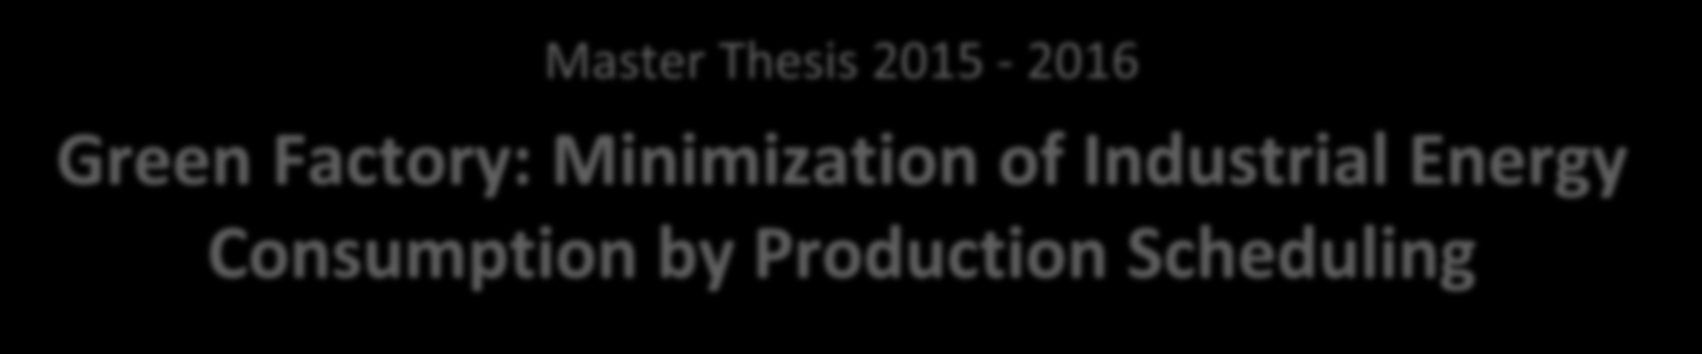 Master Thesis 2015-2016 Green Factory: Minimization of